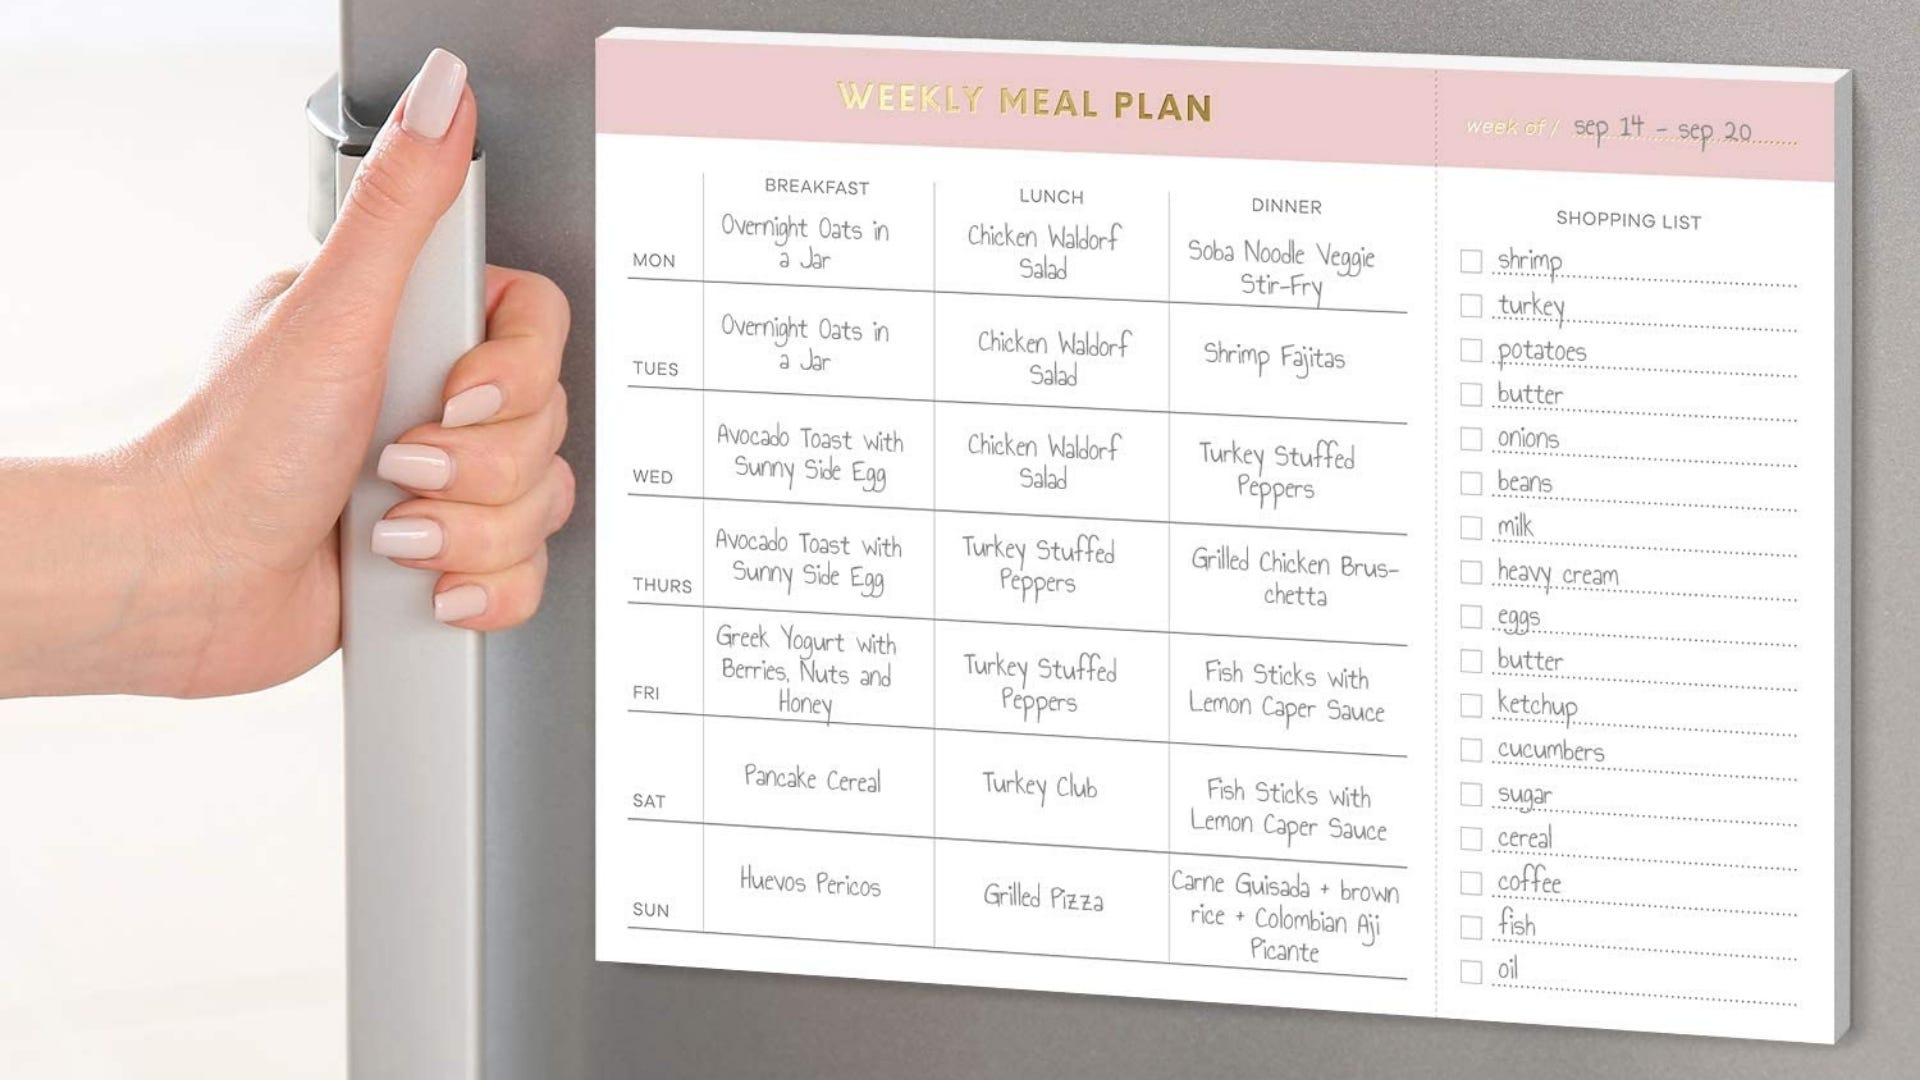 Meal planner on refrigerator